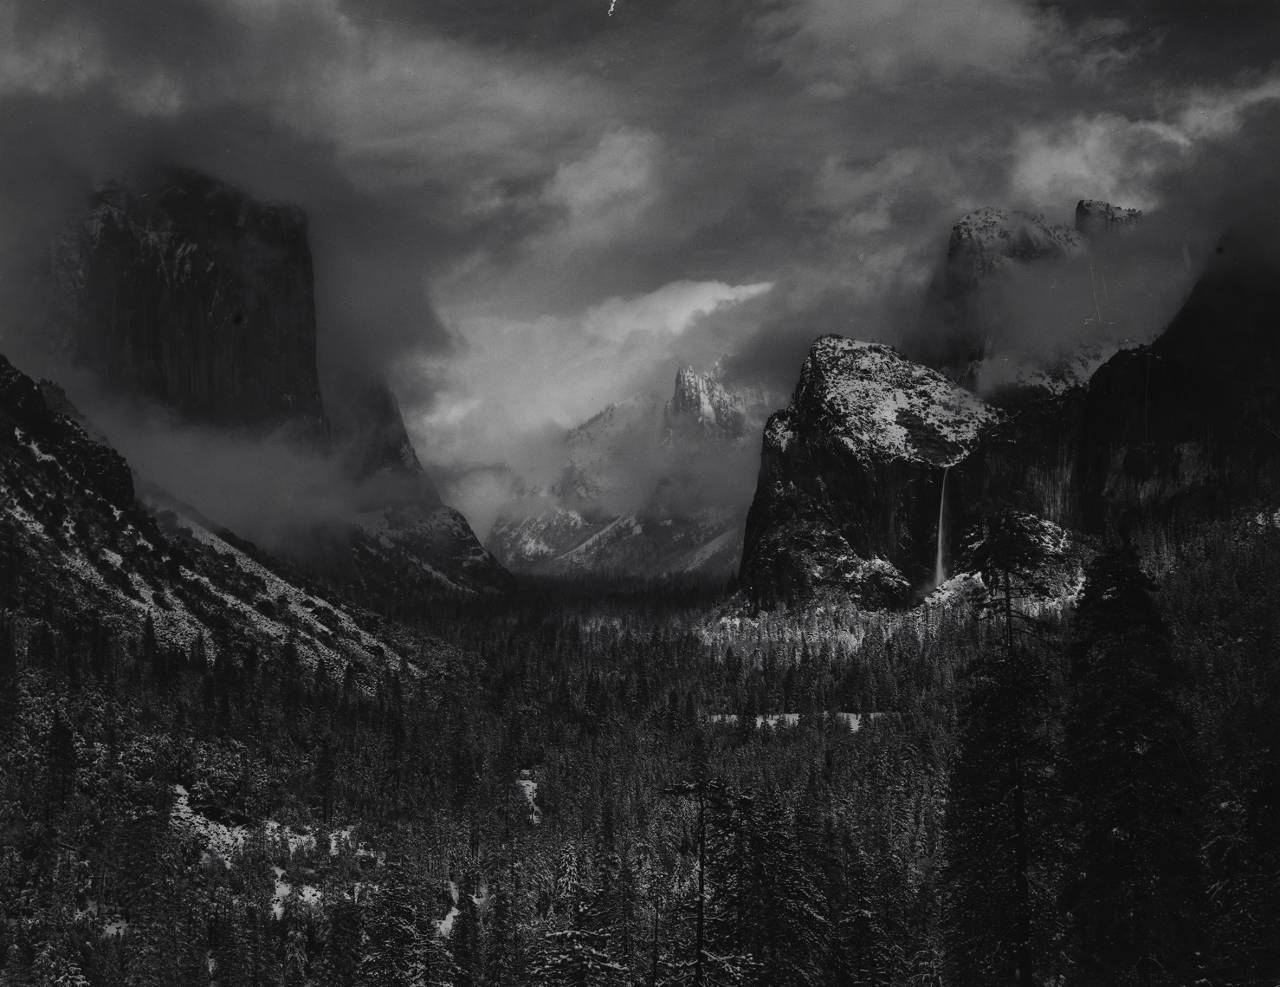 |Ansel Adams, Yosemite National Park, Kalifornien, USA, um 1937 (© National Geographic Image Collection)